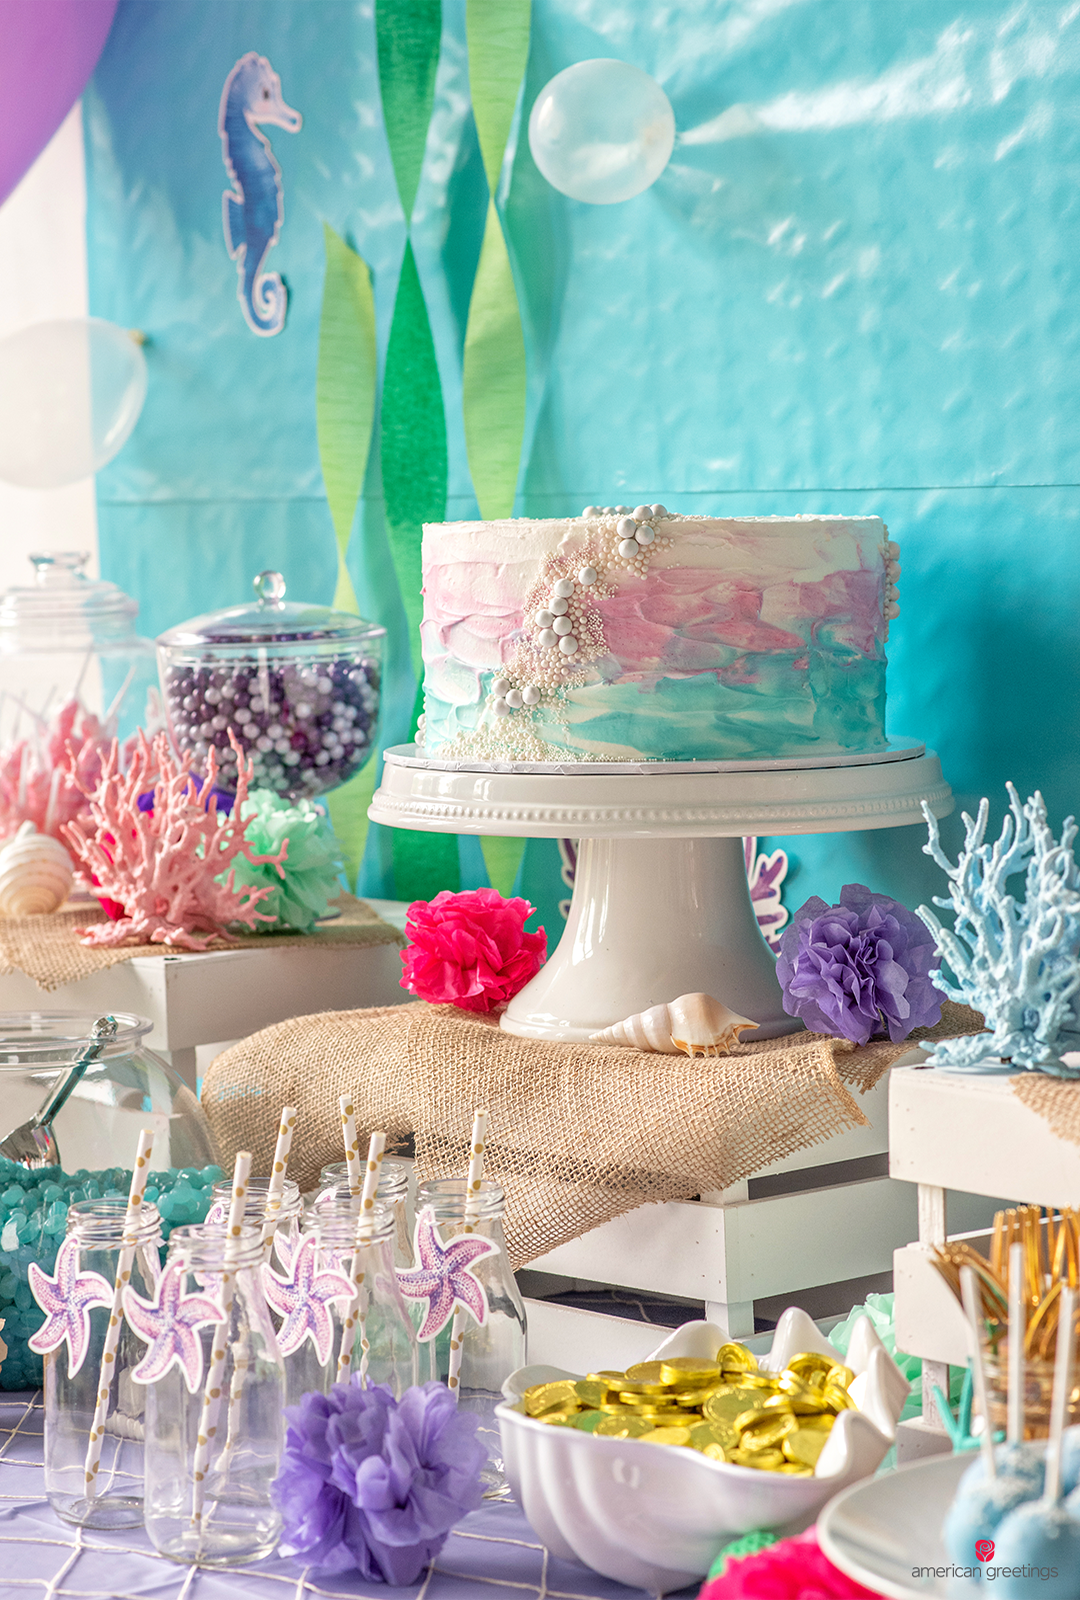 Cake on a stand, accessorized with pearl candies